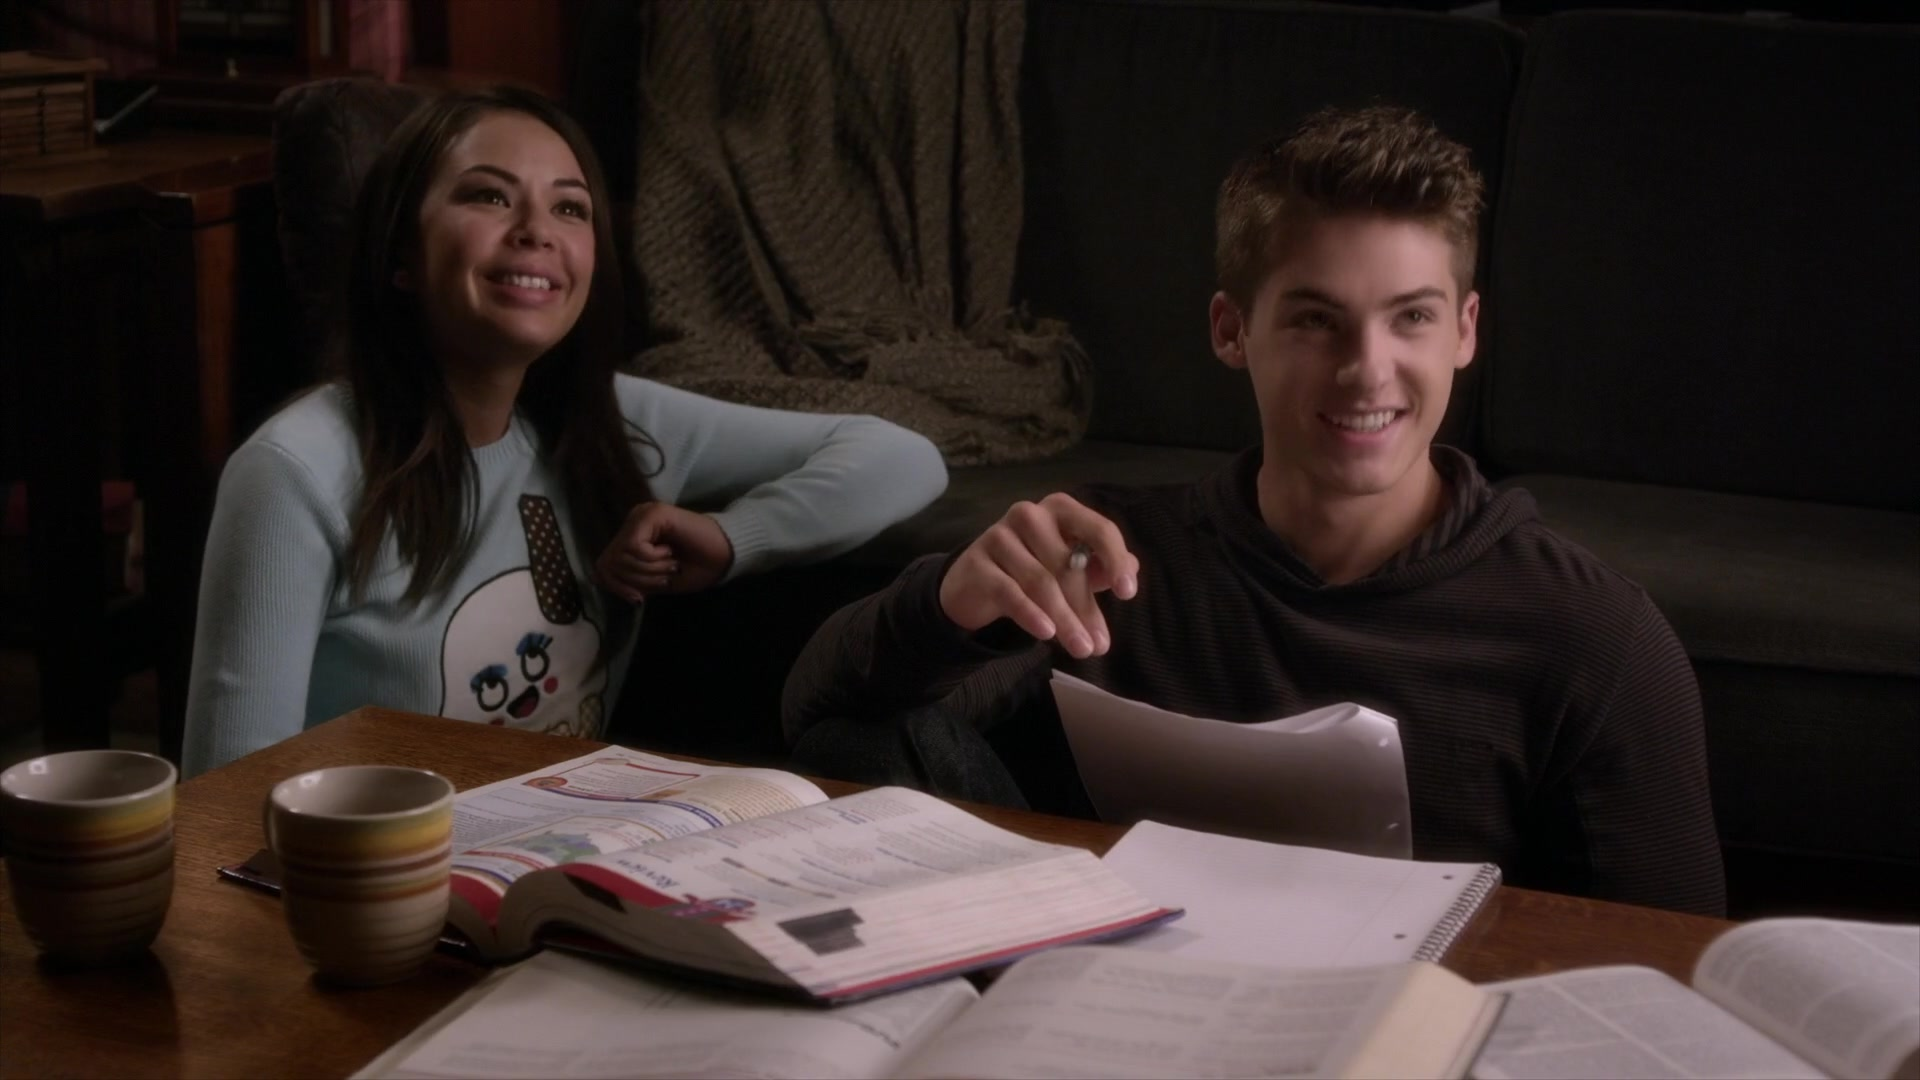 pll mike actor